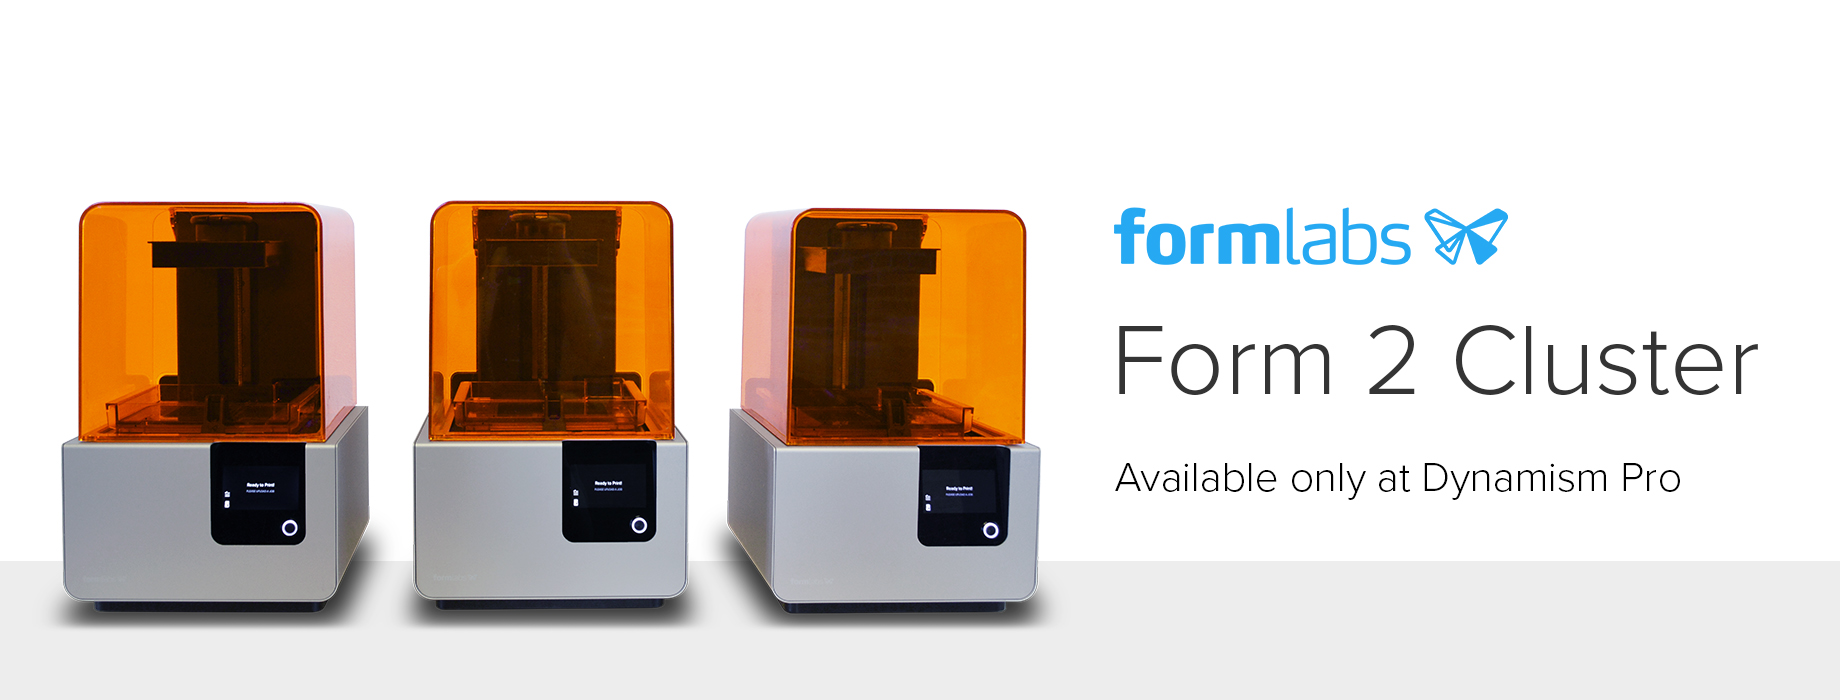 The Formlabs Form2 is capable of printing a variety of specialty materials, allowing applications for printing injection molds casting blanks and as well as simulating rubber, polypropylene, and ABS.